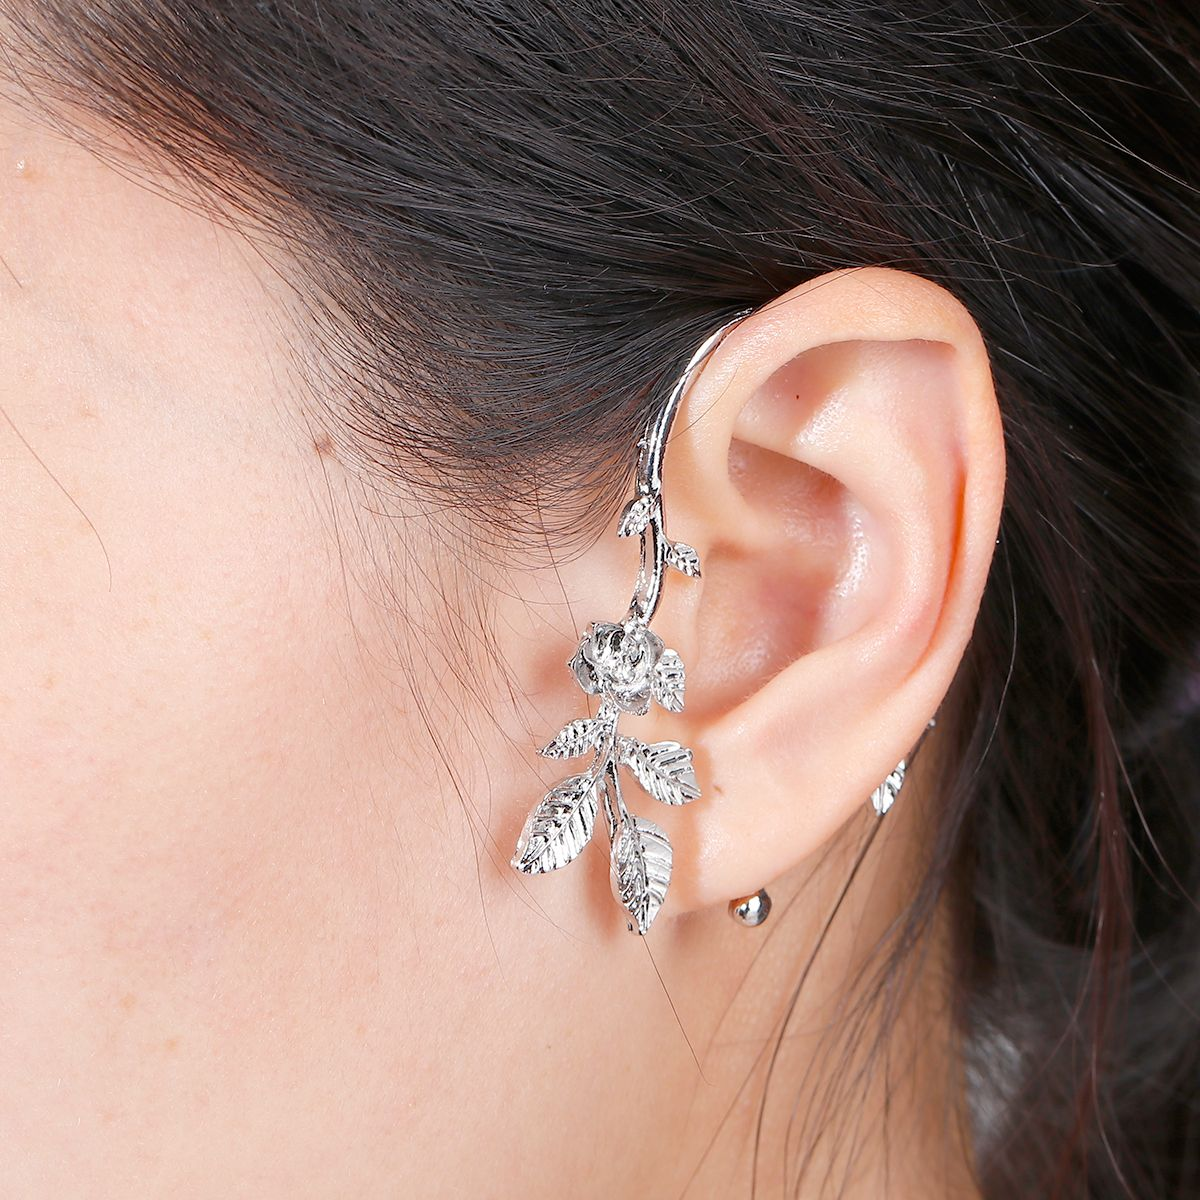 trend latest tag archives market full ear in dressed earring to wrap earrings excite